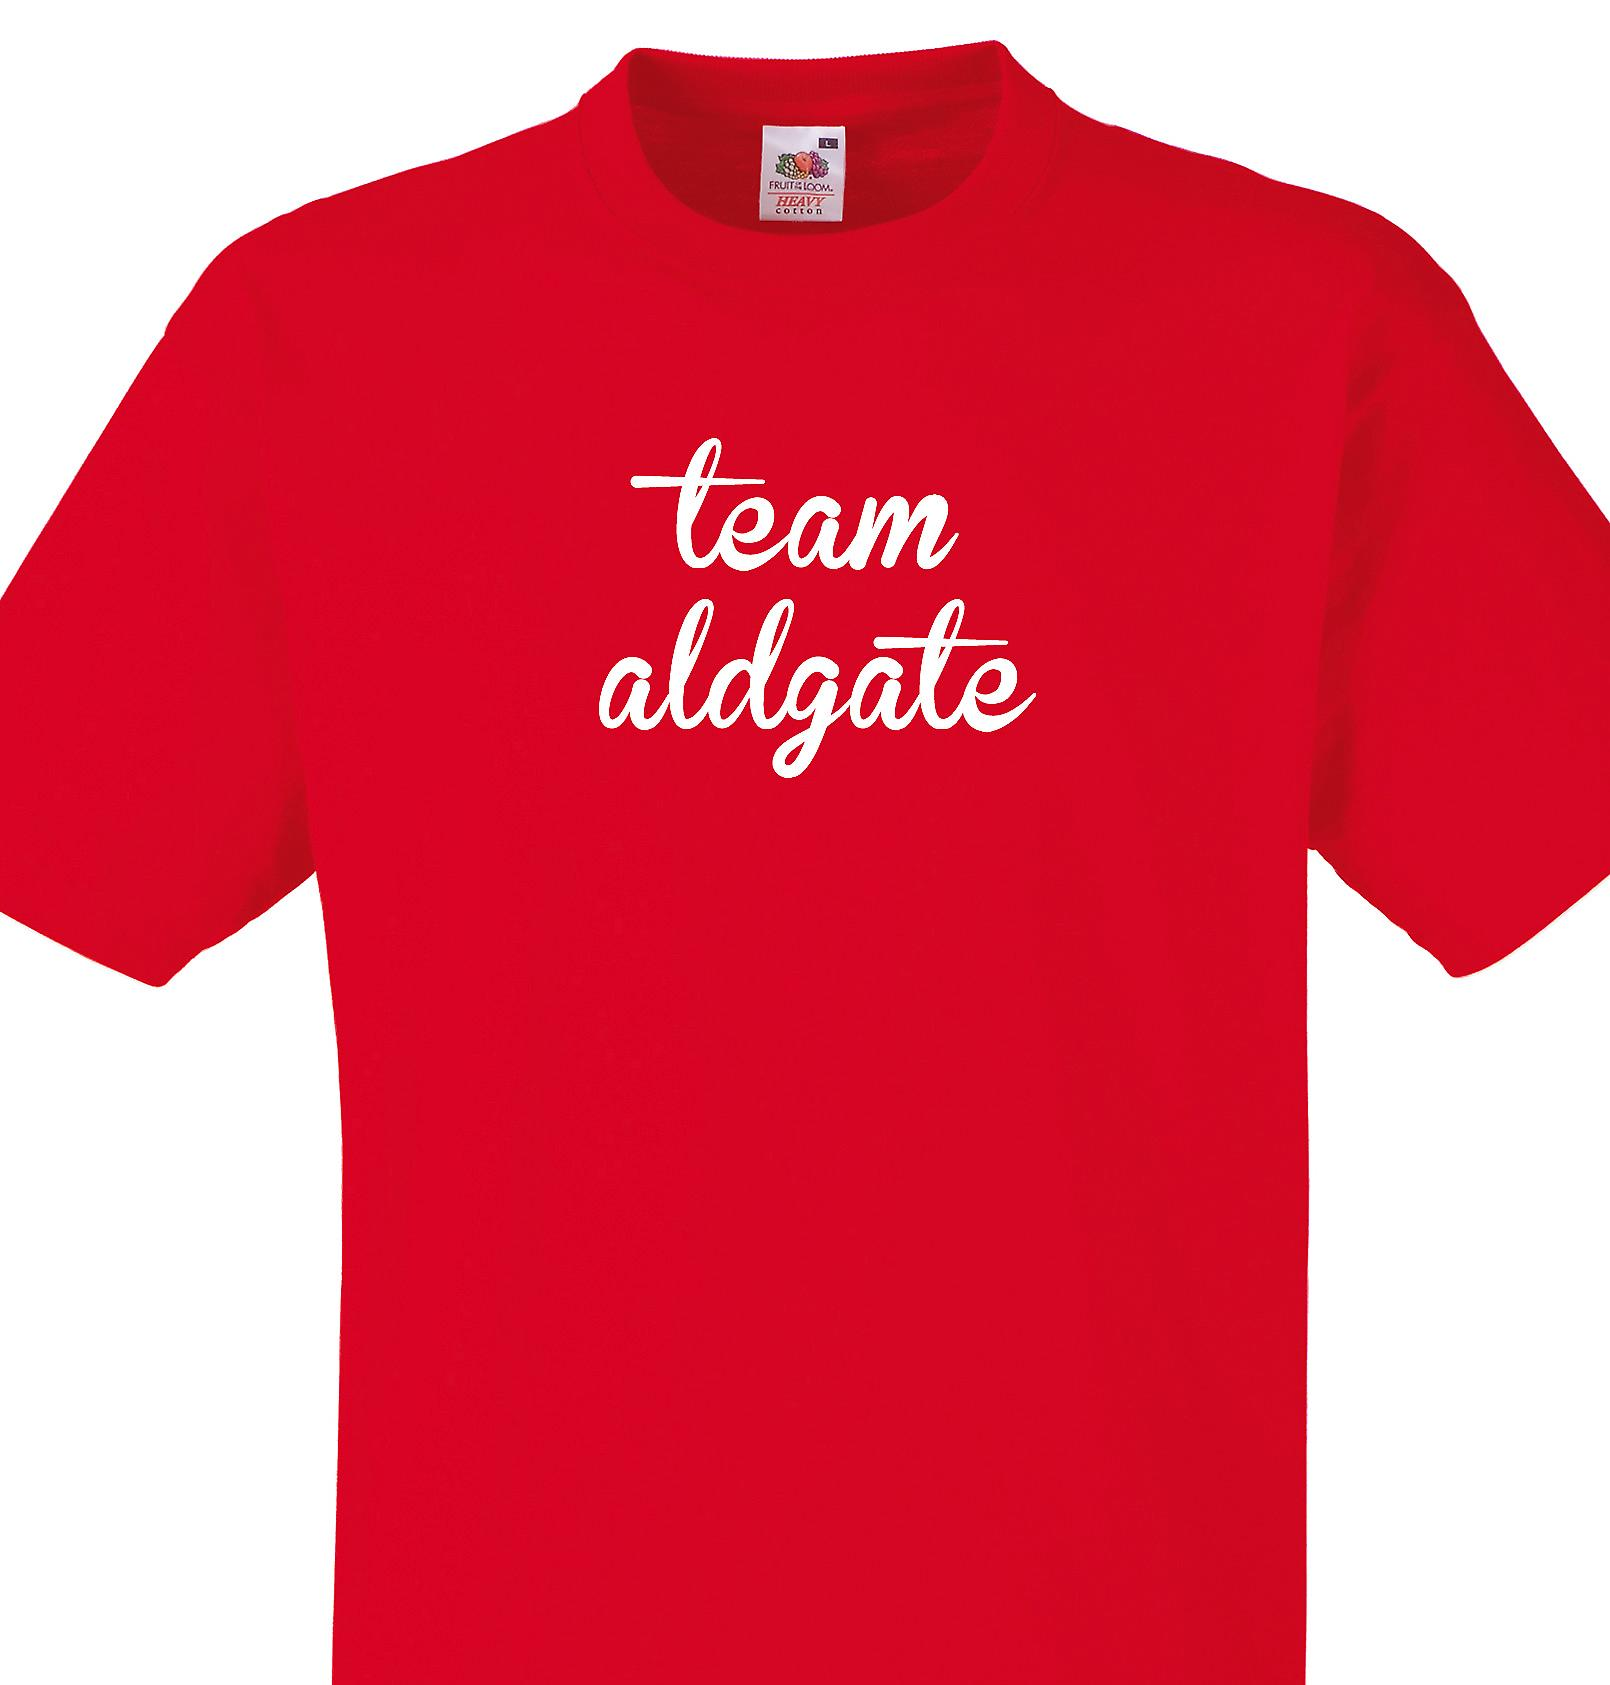 Team Aldgate Red T shirt